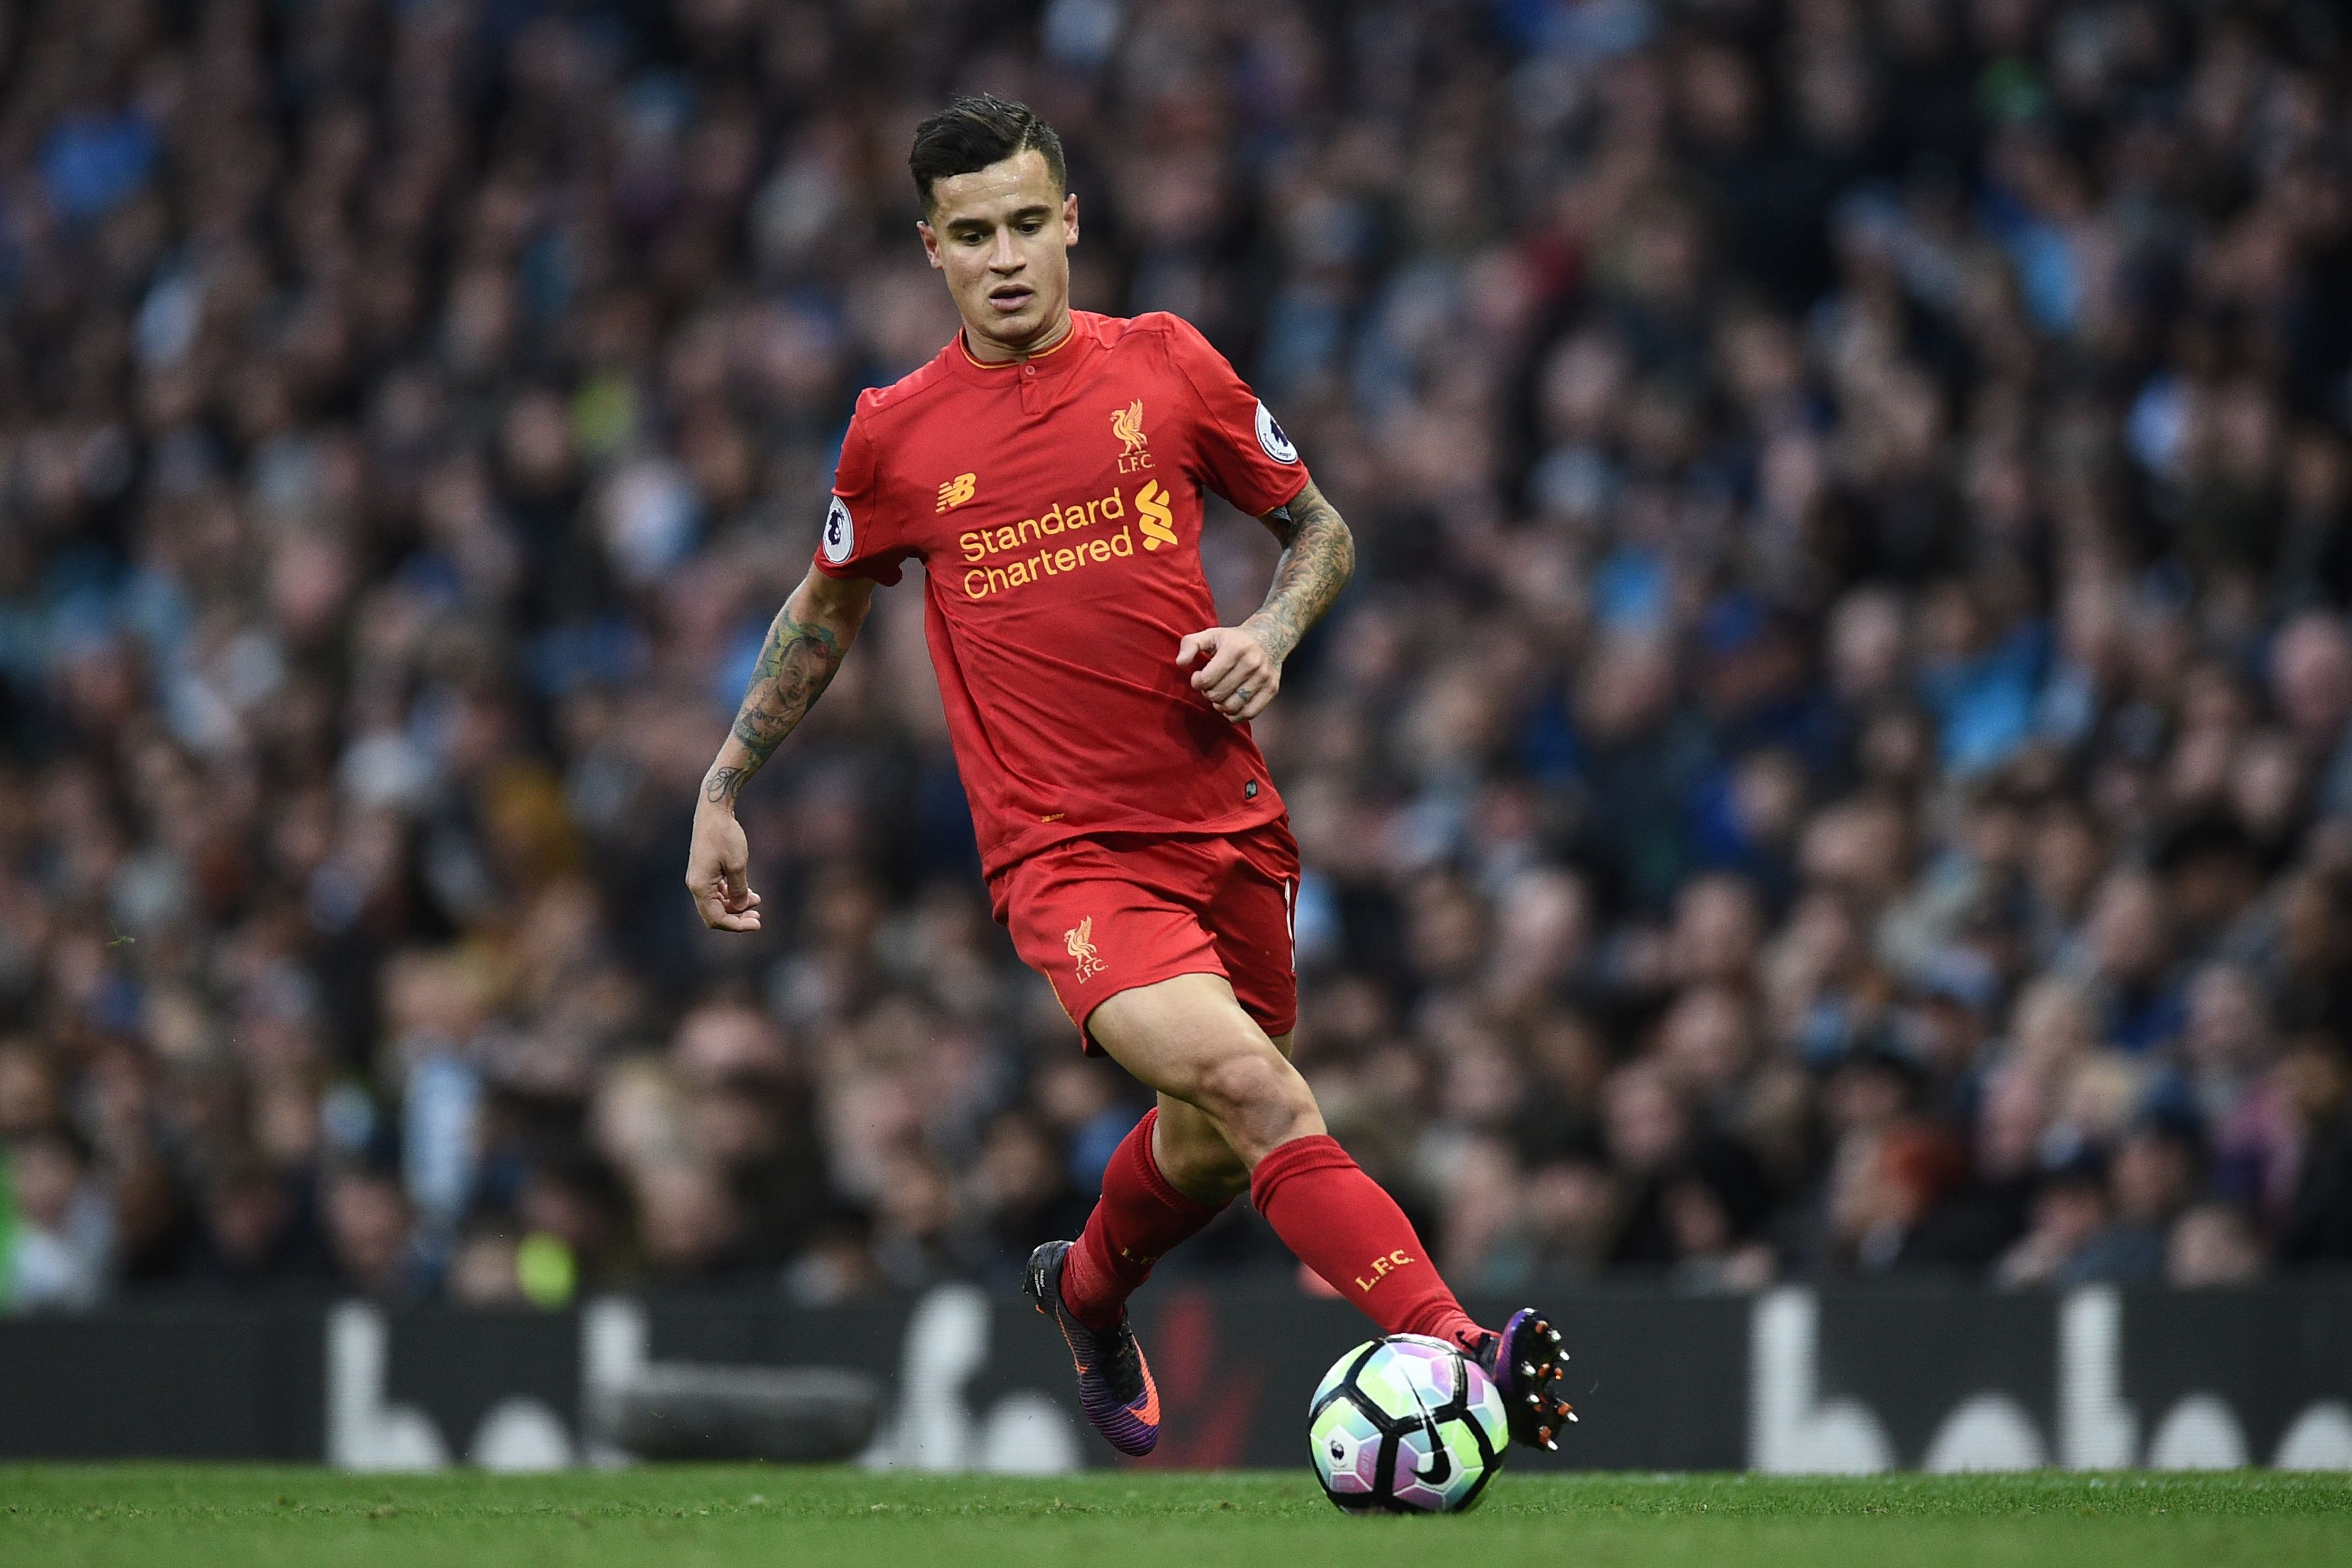 Stoke City v Liverpool team news: Philippe Coutinho named on bench after illness fears